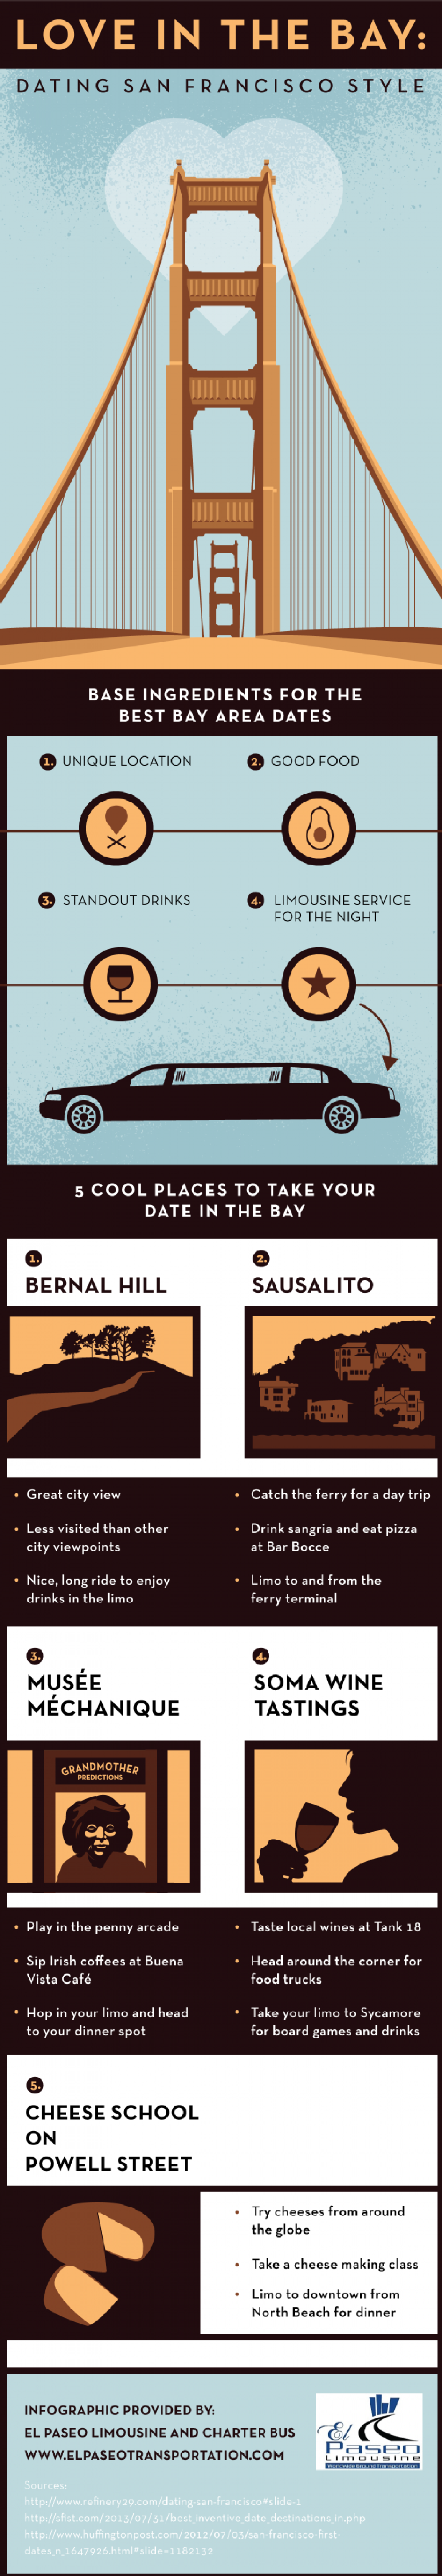 Love in the Bay: Dating San Francisco Style Infographic